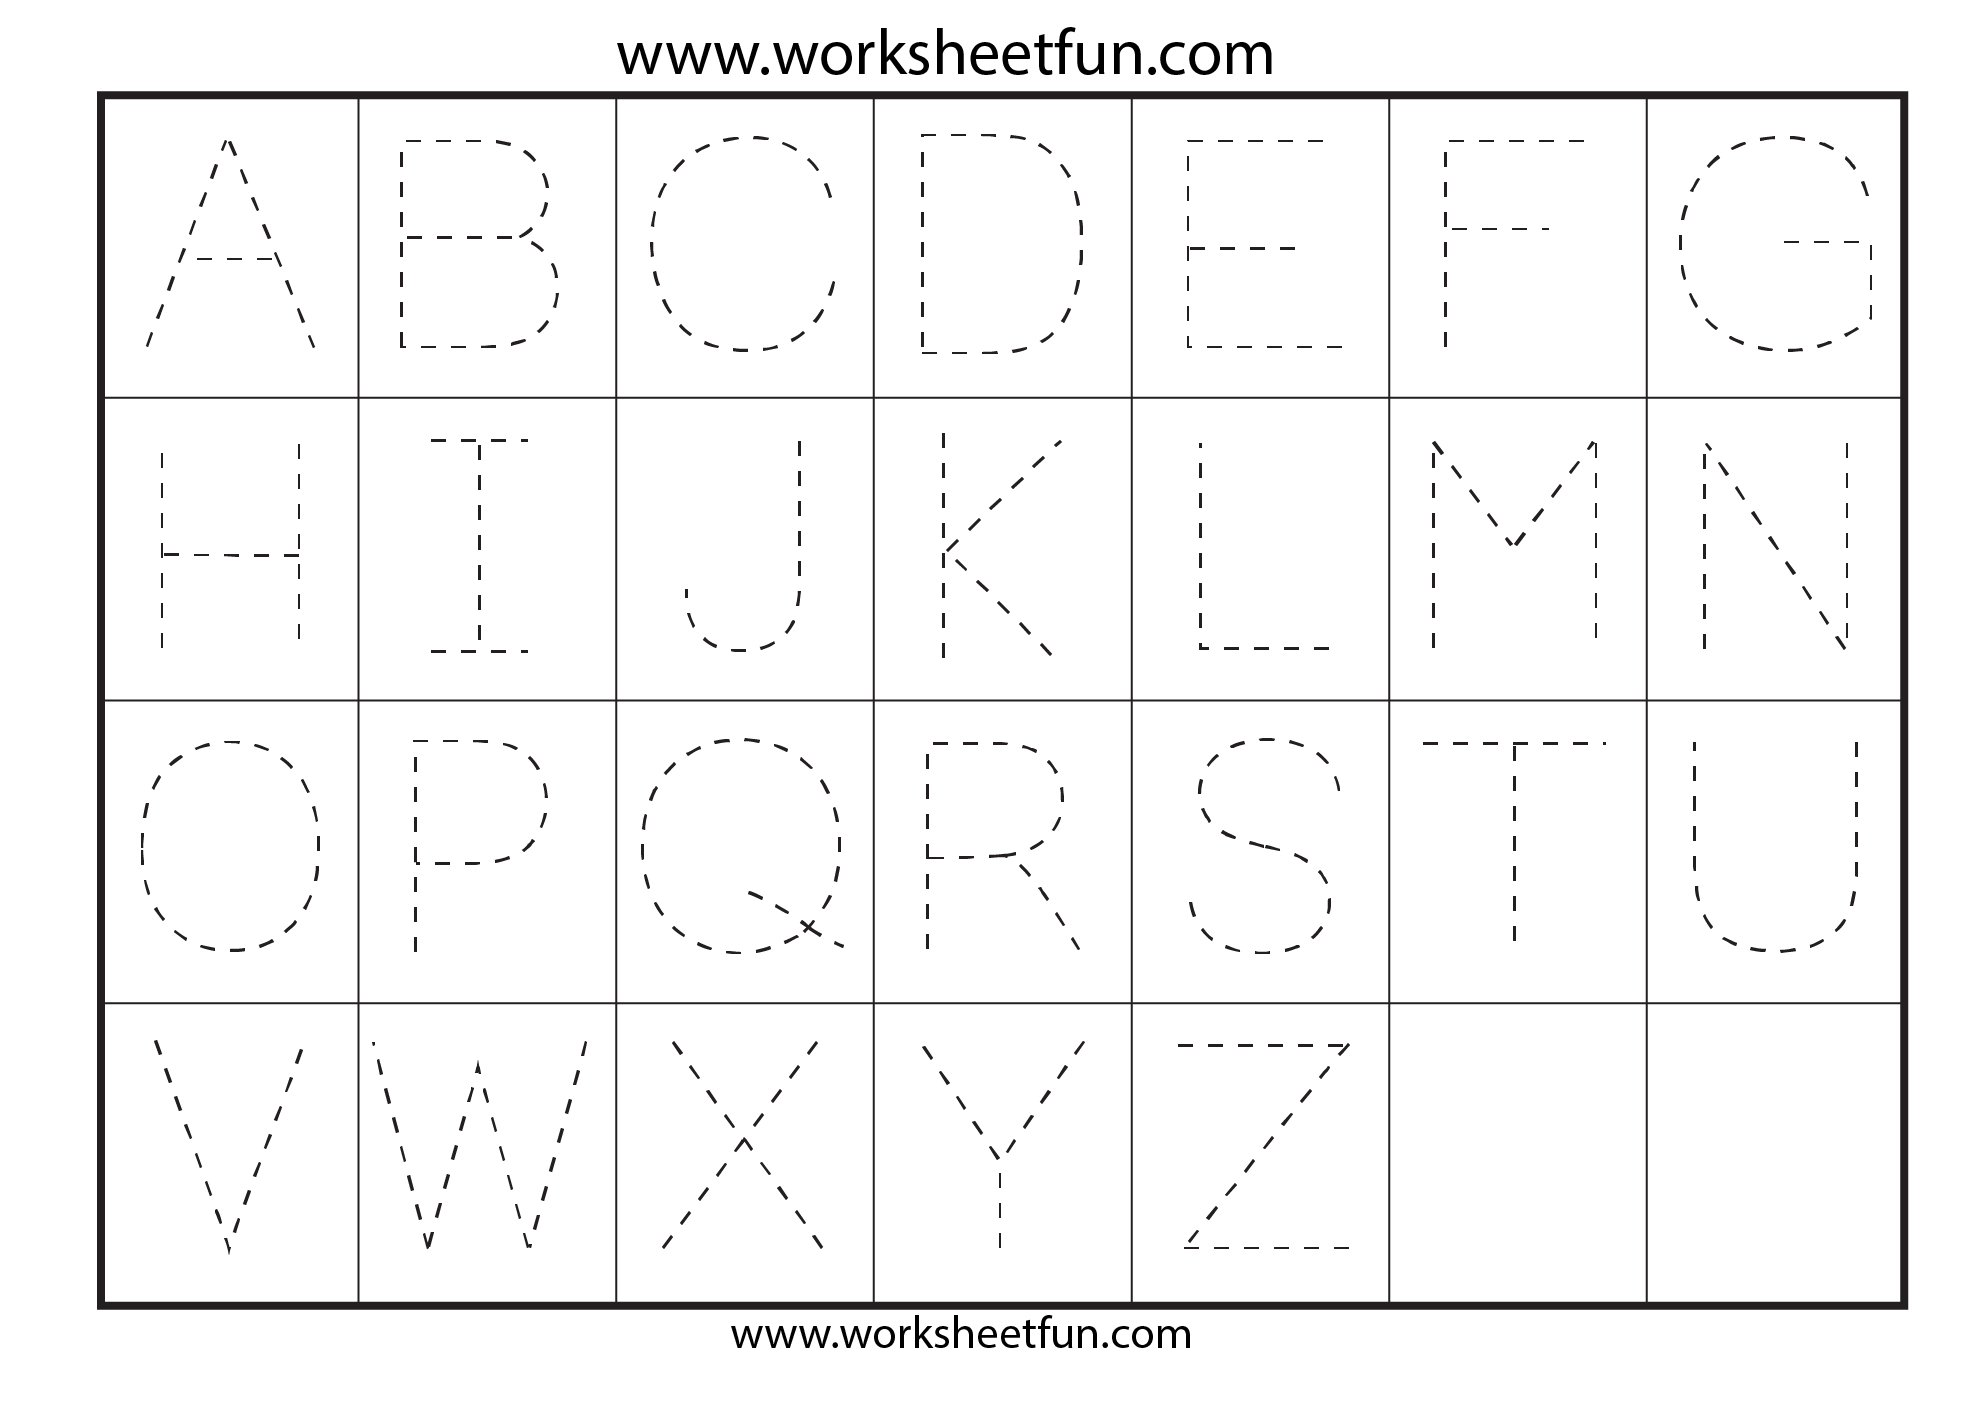 Printables Traceable Alphabet Worksheet traceable letters worksheets versaldobip tracing alphabet for kindergarten worksheet kids versaldobip